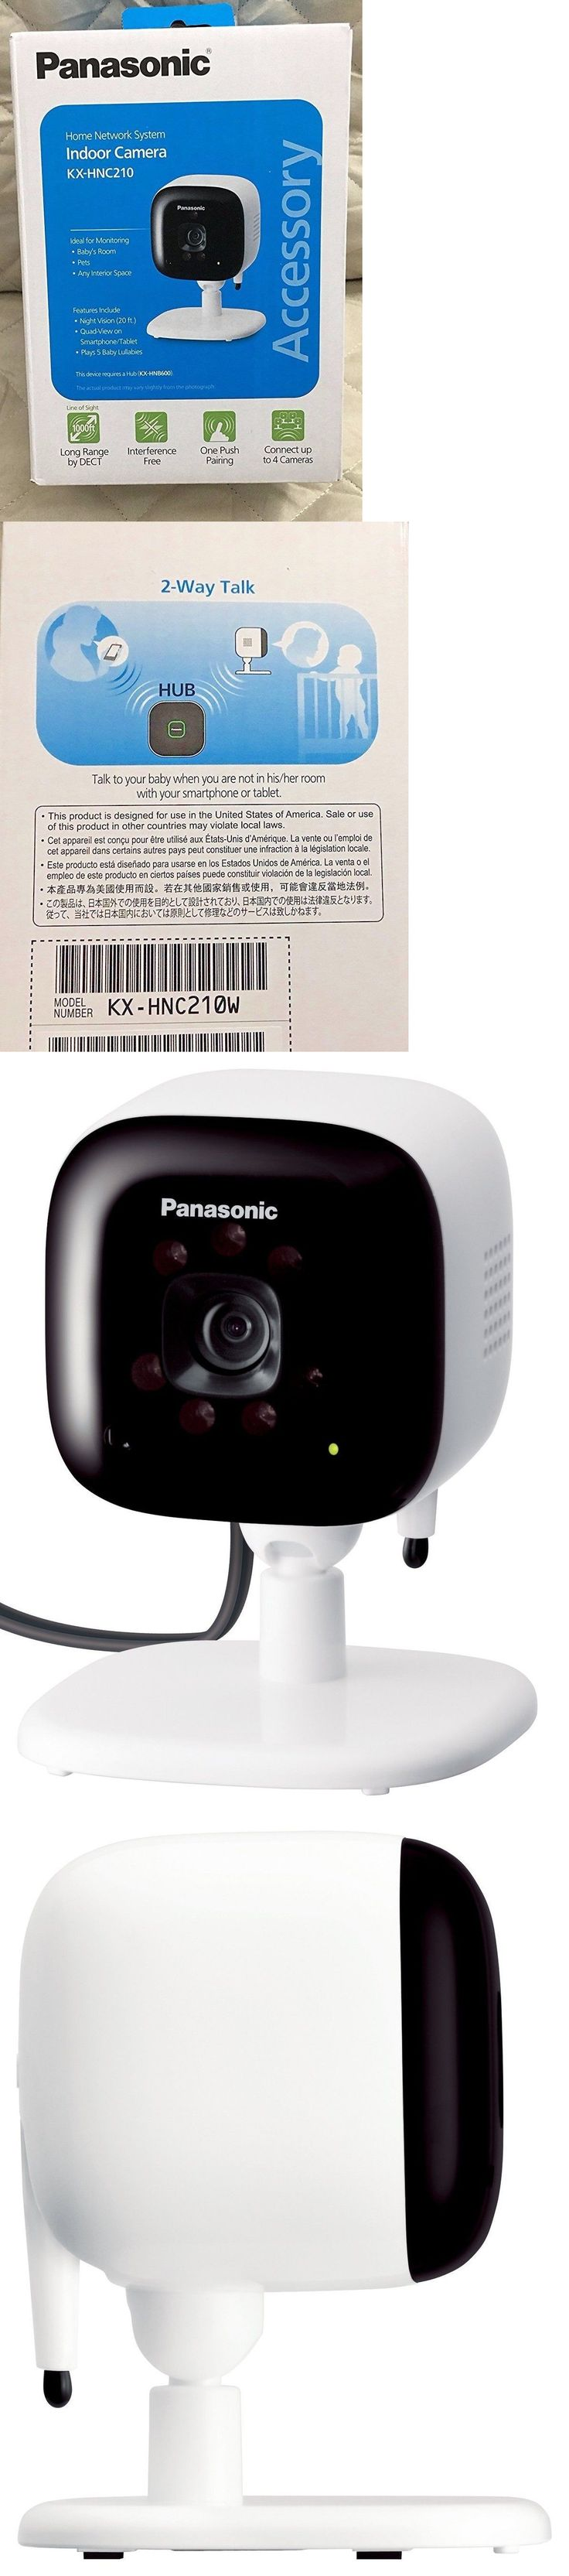 Security Systems 41969: Panasonic Indoor Camera For Home Monitoring System Hnc210w Sealed New -> BUY IT NOW ONLY: $50 on eBay!